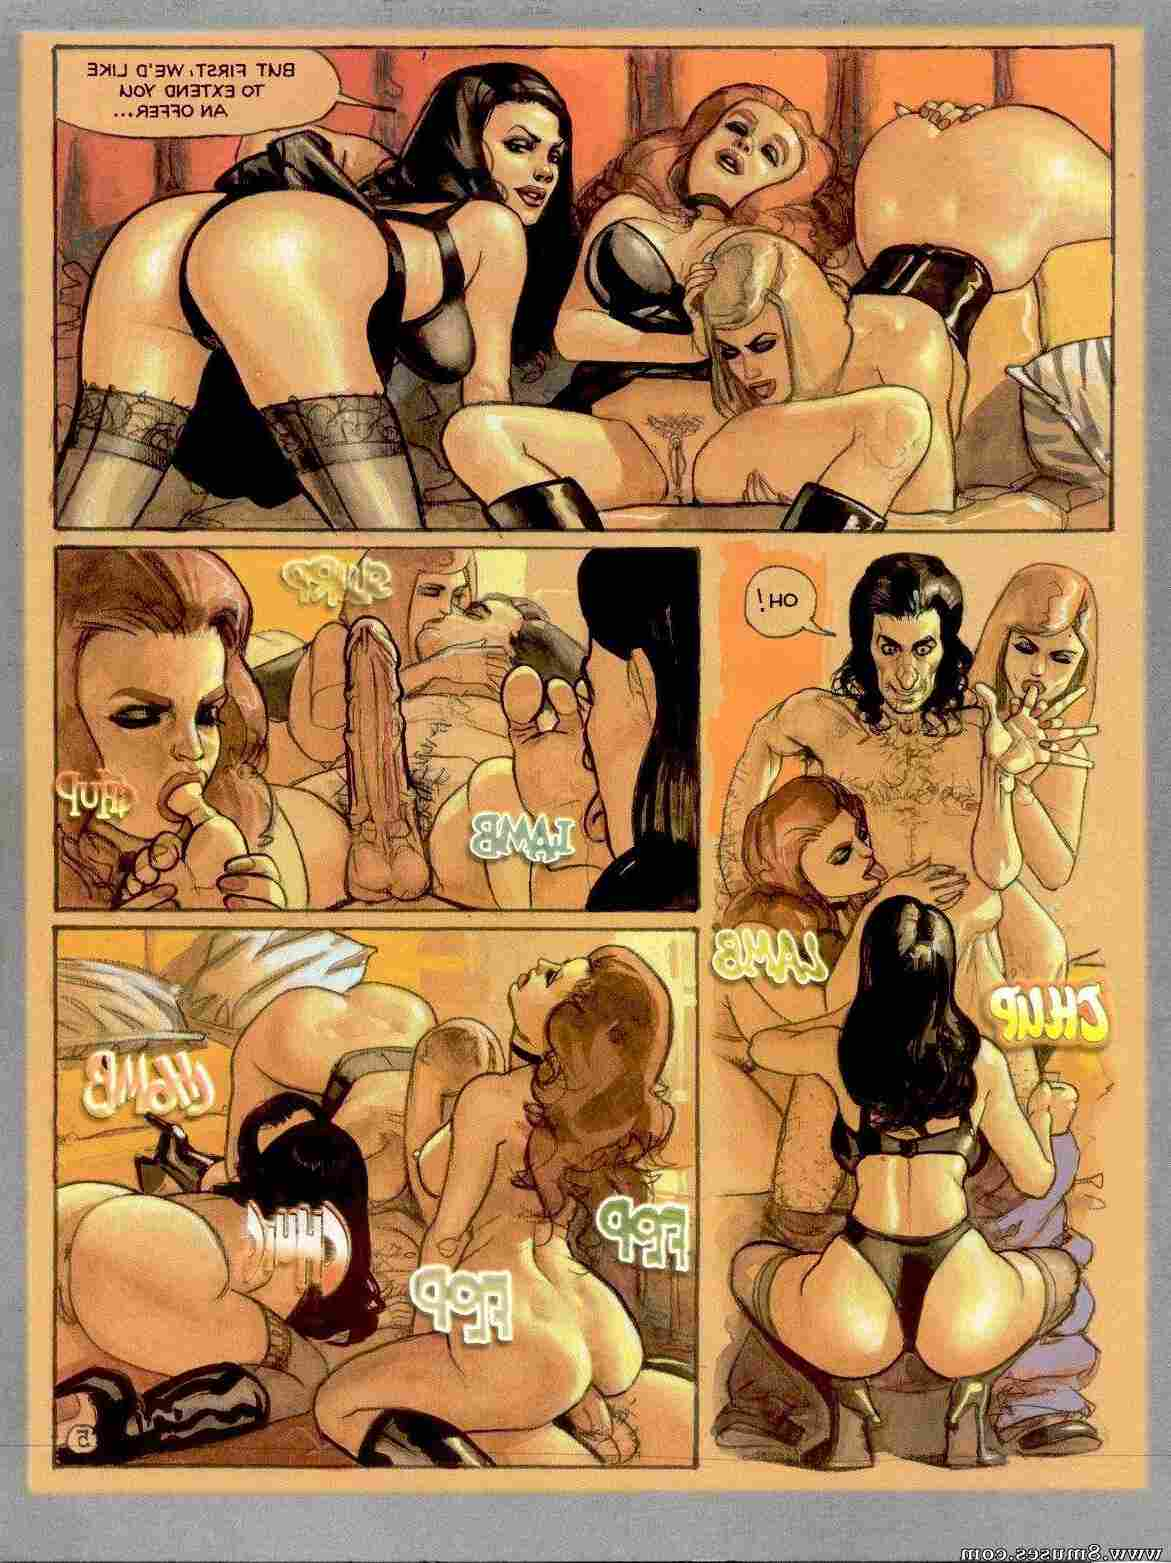 Ignacio-Noe-Comics/All-the-Right-Career-Moves All_the_Right_Career_Moves__8muses_-_Sex_and_Porn_Comics_5.jpg